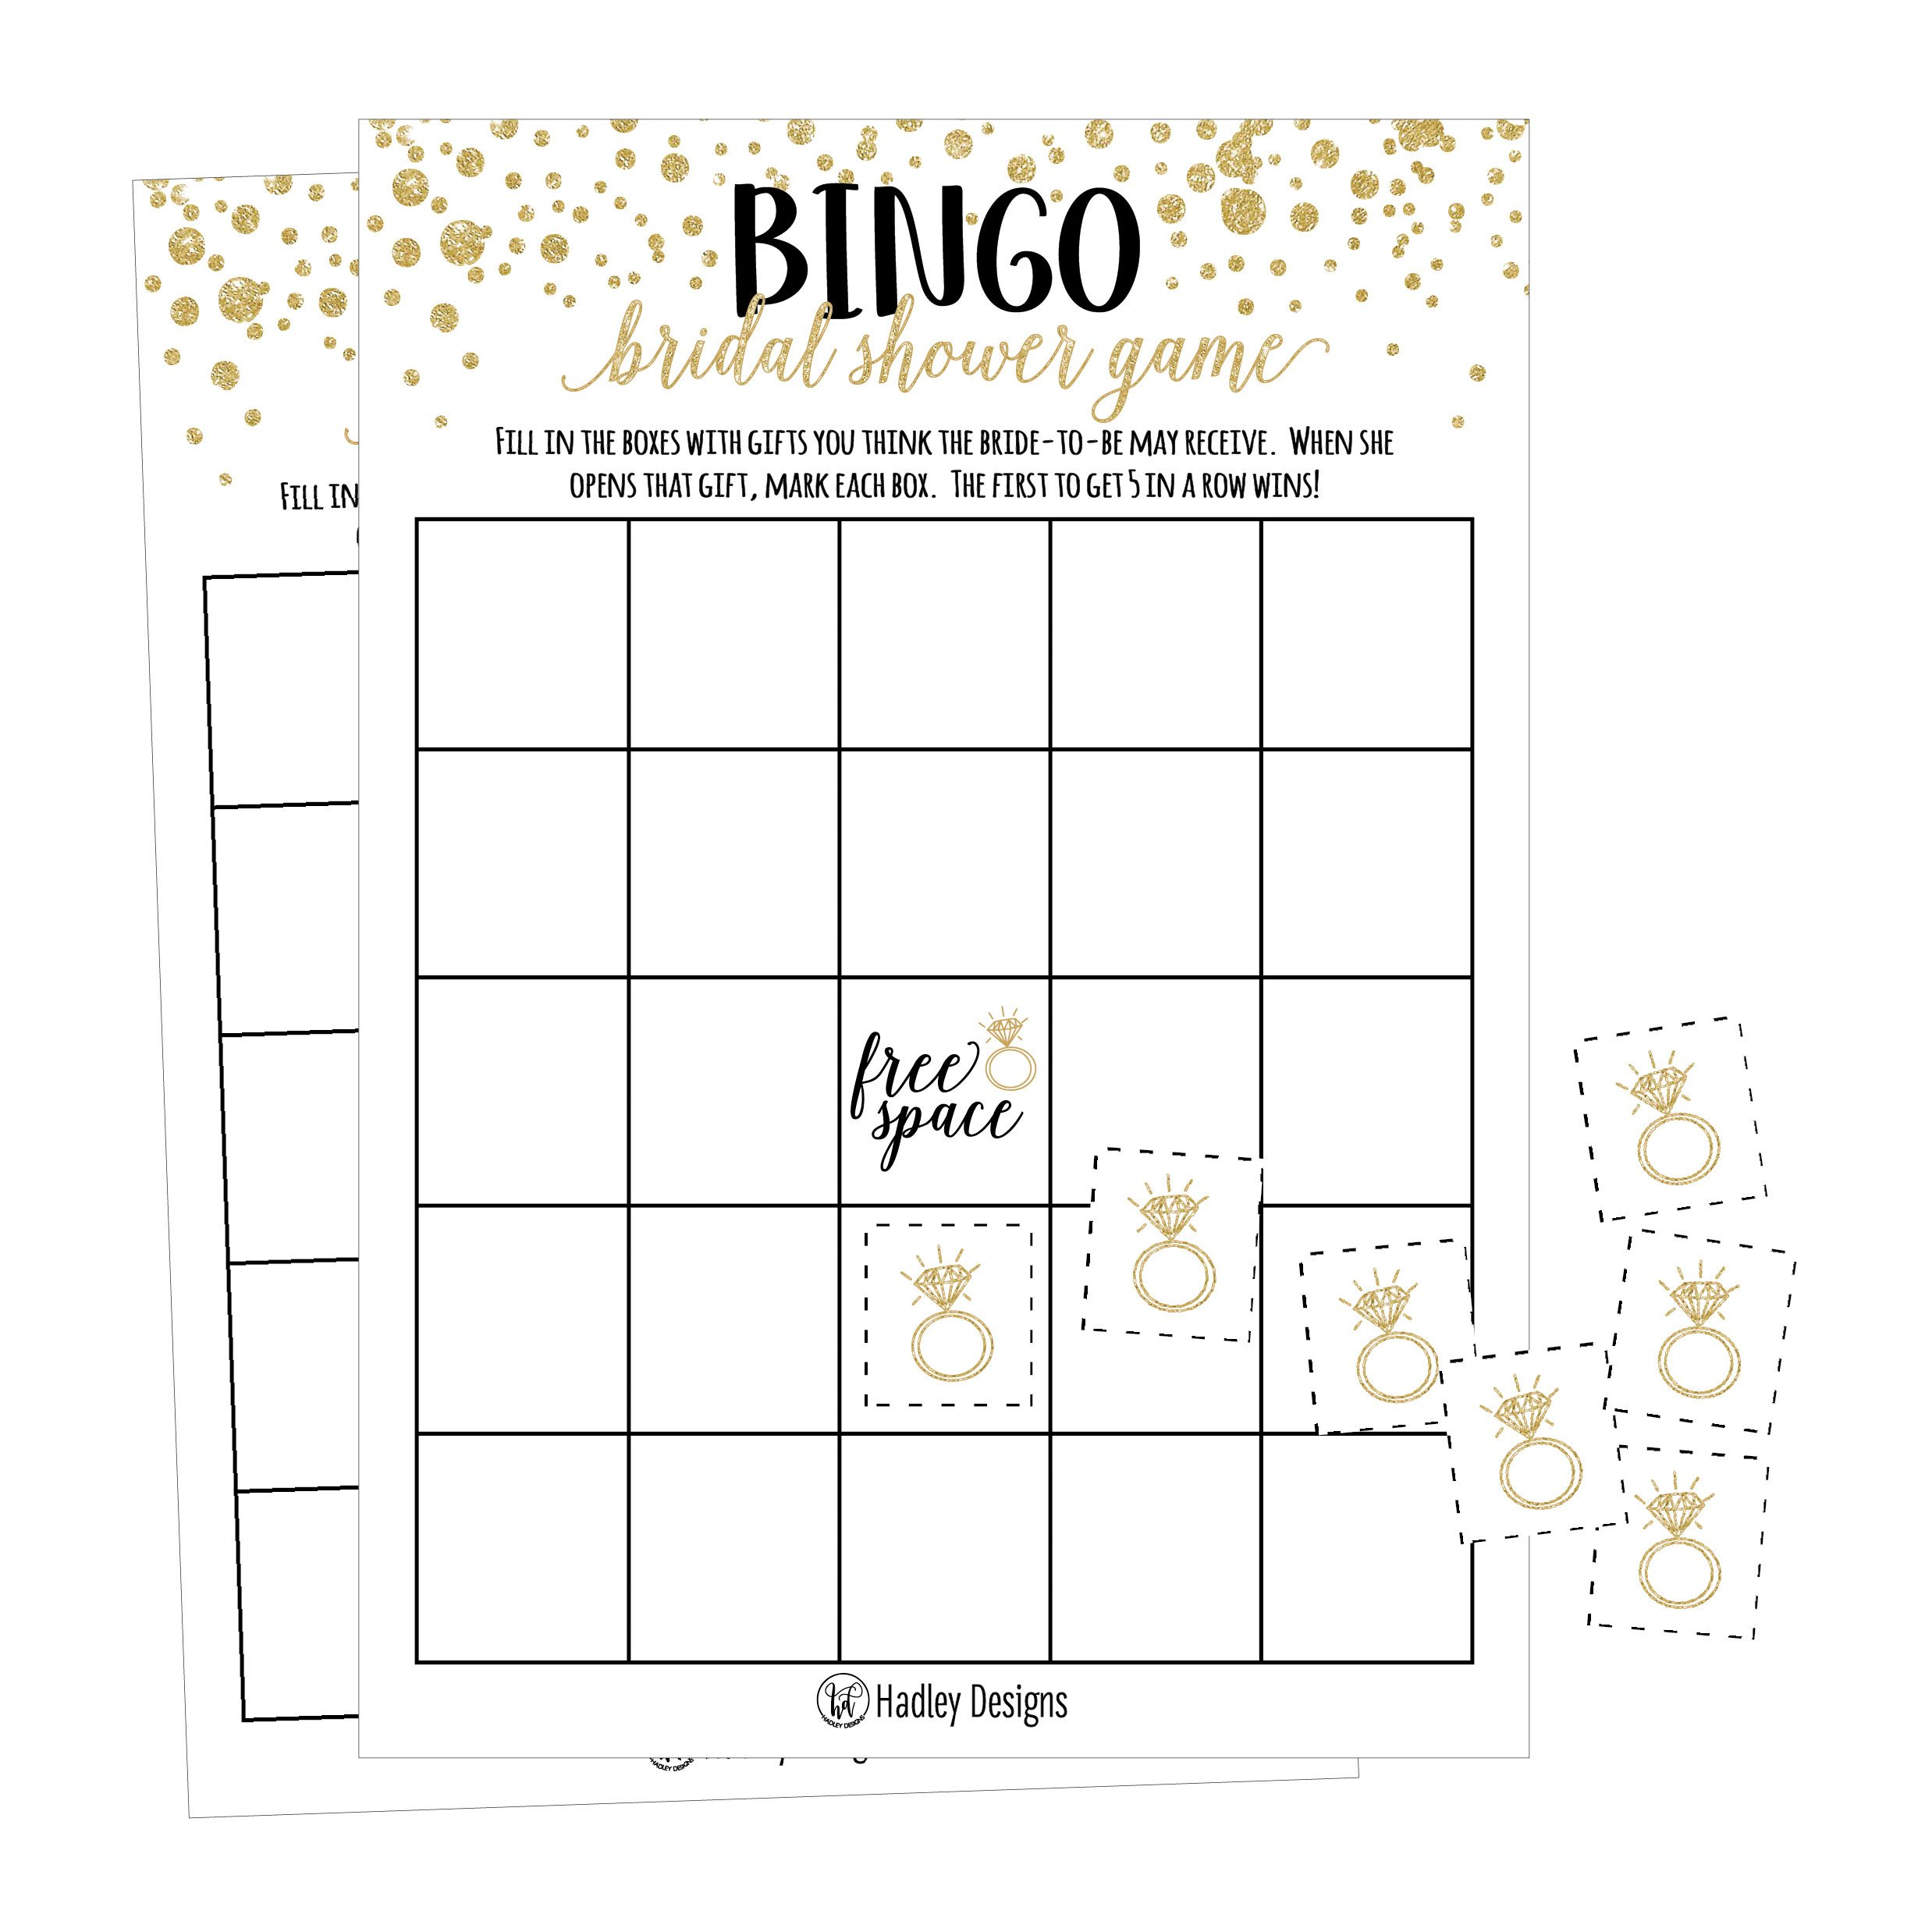 25 Gold Vintage Bingo Game Cards For Bridal Wedding Shower and Bachelorette Party, Bulk Blank Squares To Fill In Gift Ideas, Funny Supplies For Bride and Couple PLUS 25 Wedding Ring Bingo Chip Markers by Hadley Designs